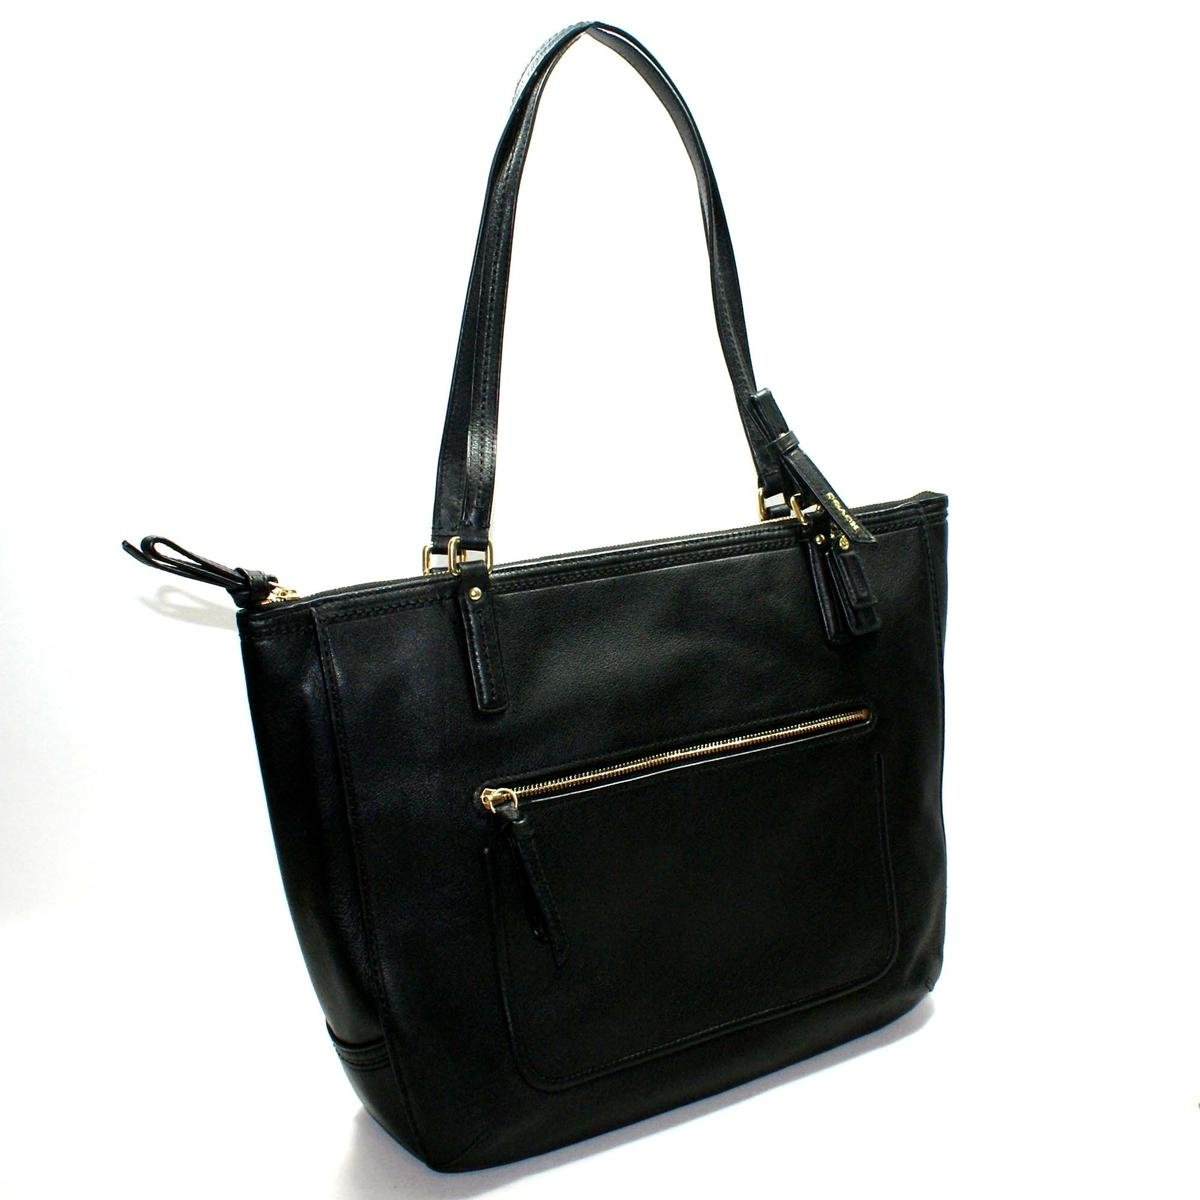 Coach Poppy Black Leather Small Tote #25066 : Coach 25066